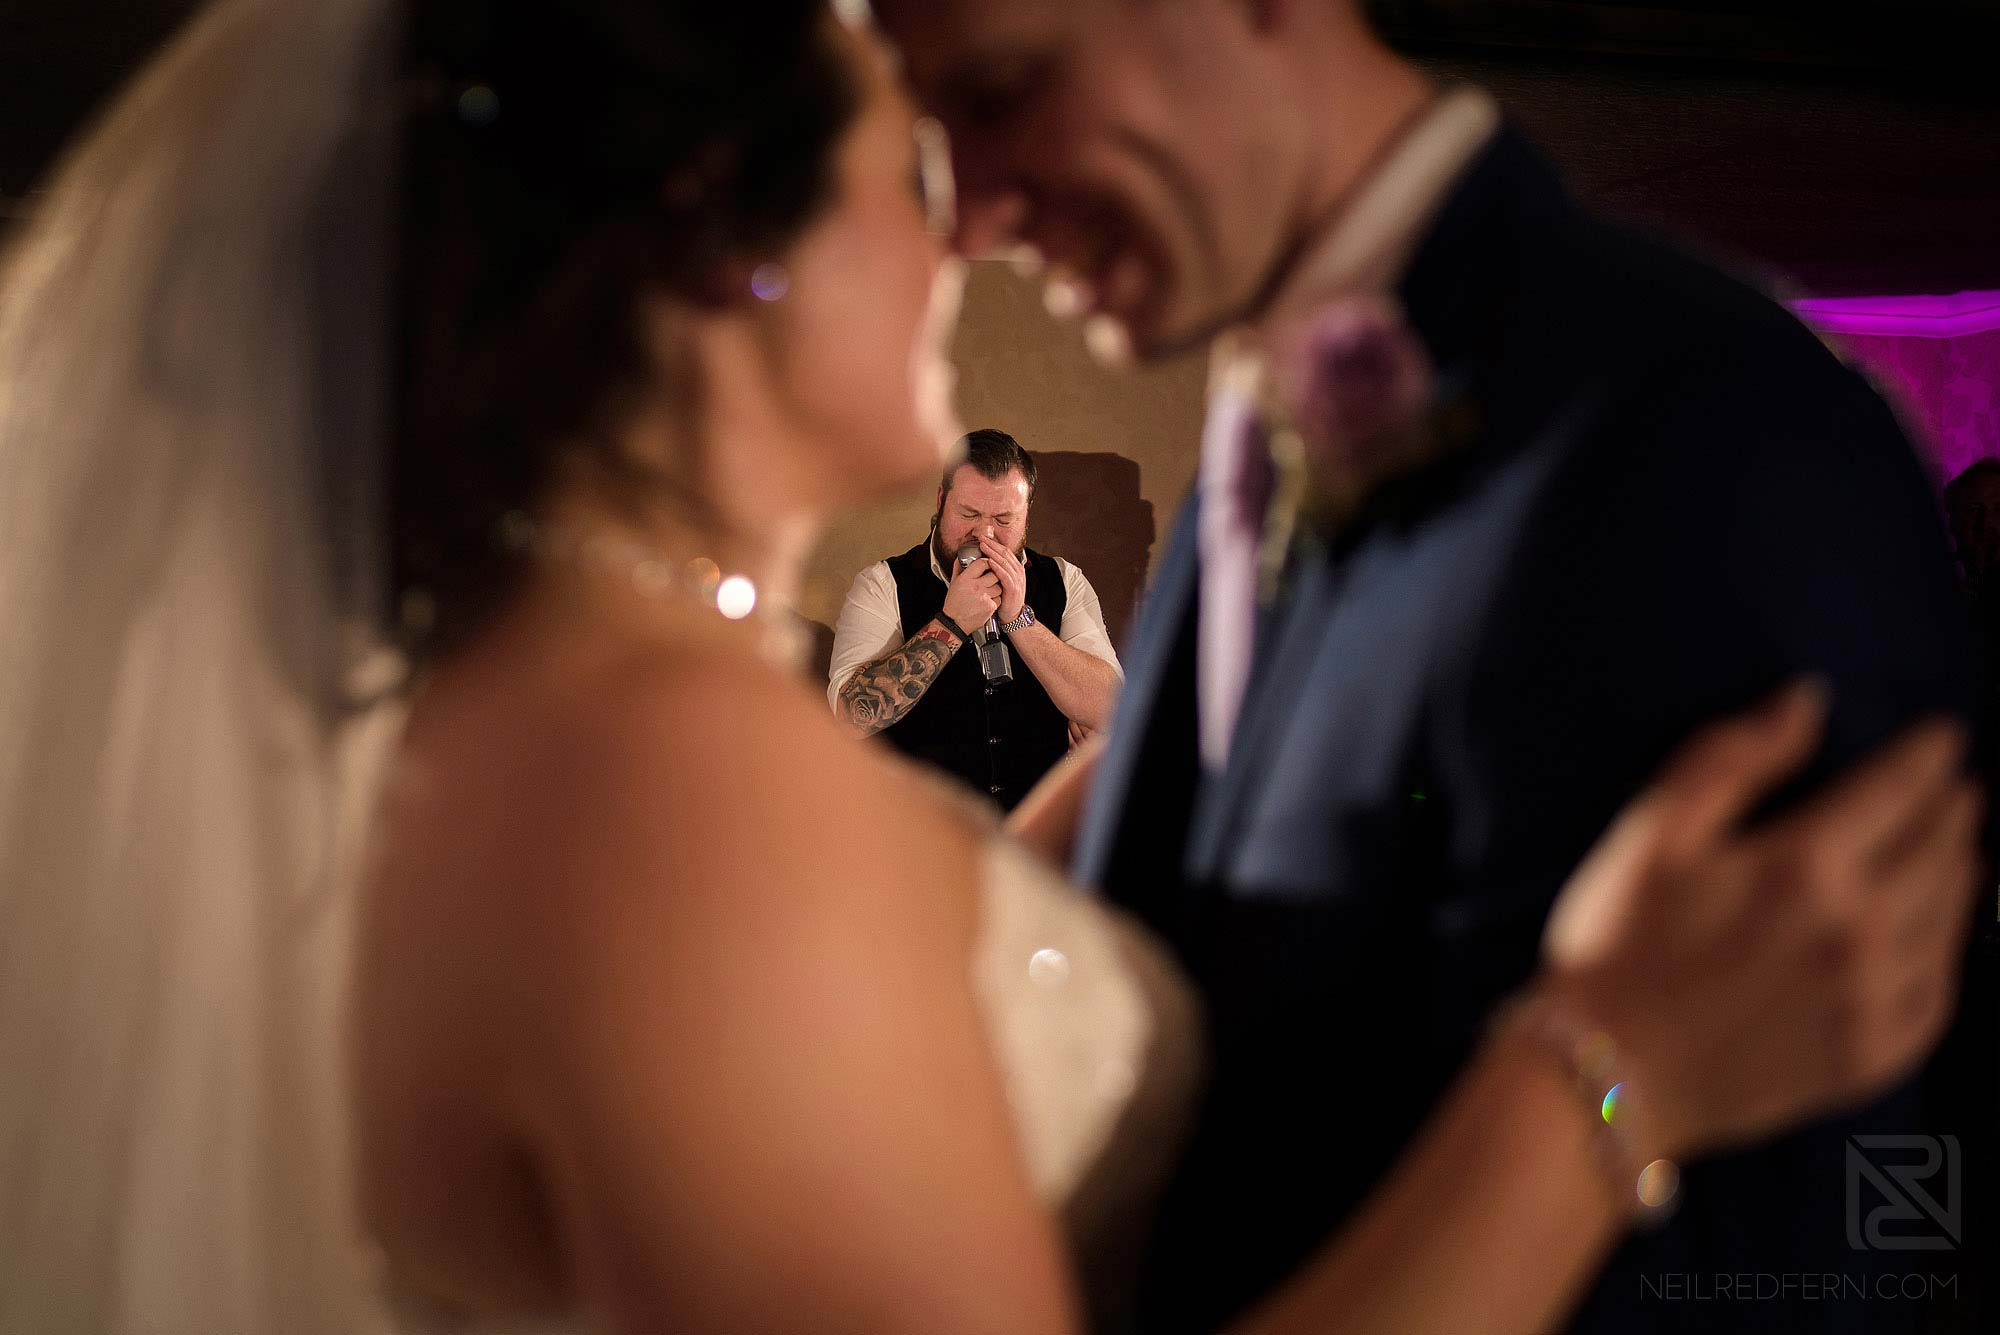 Gavin from The Rush wedding band singing first dance